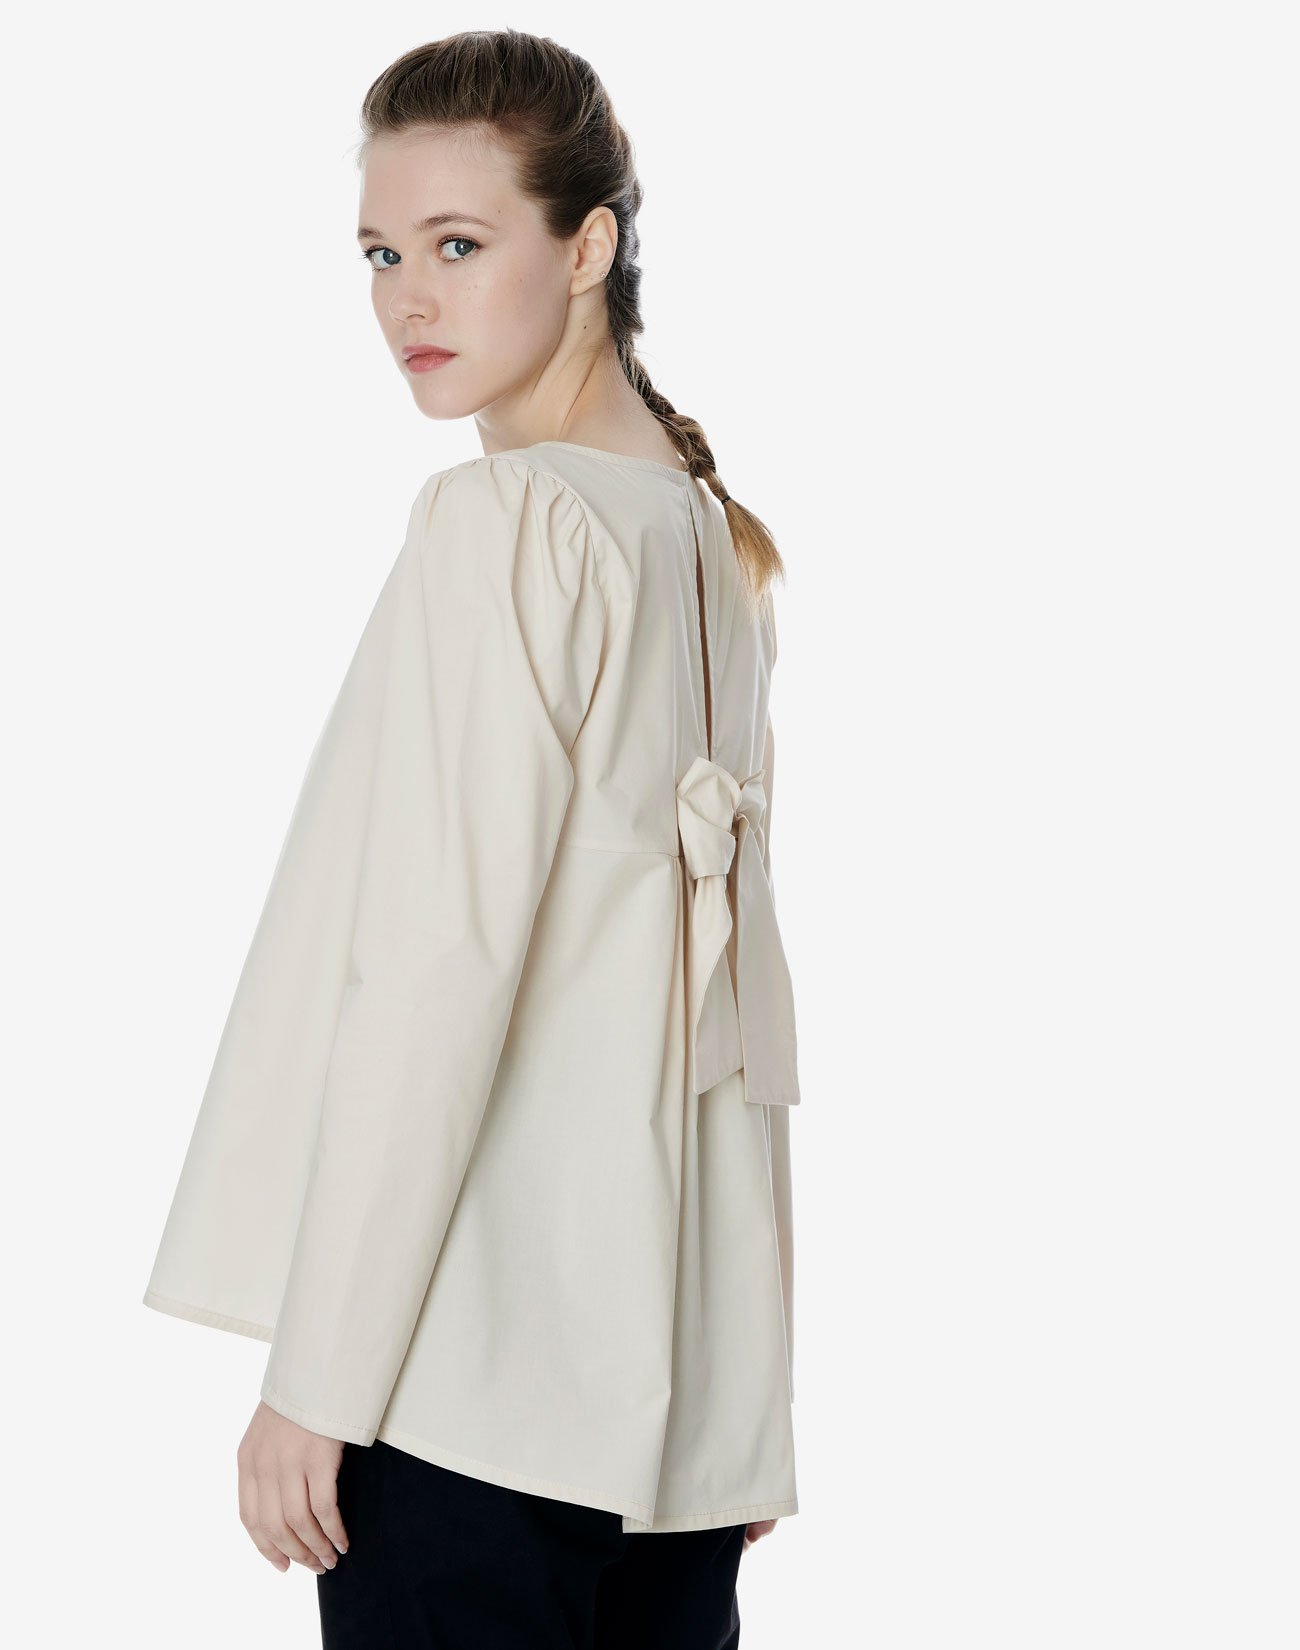 Shirt with bow